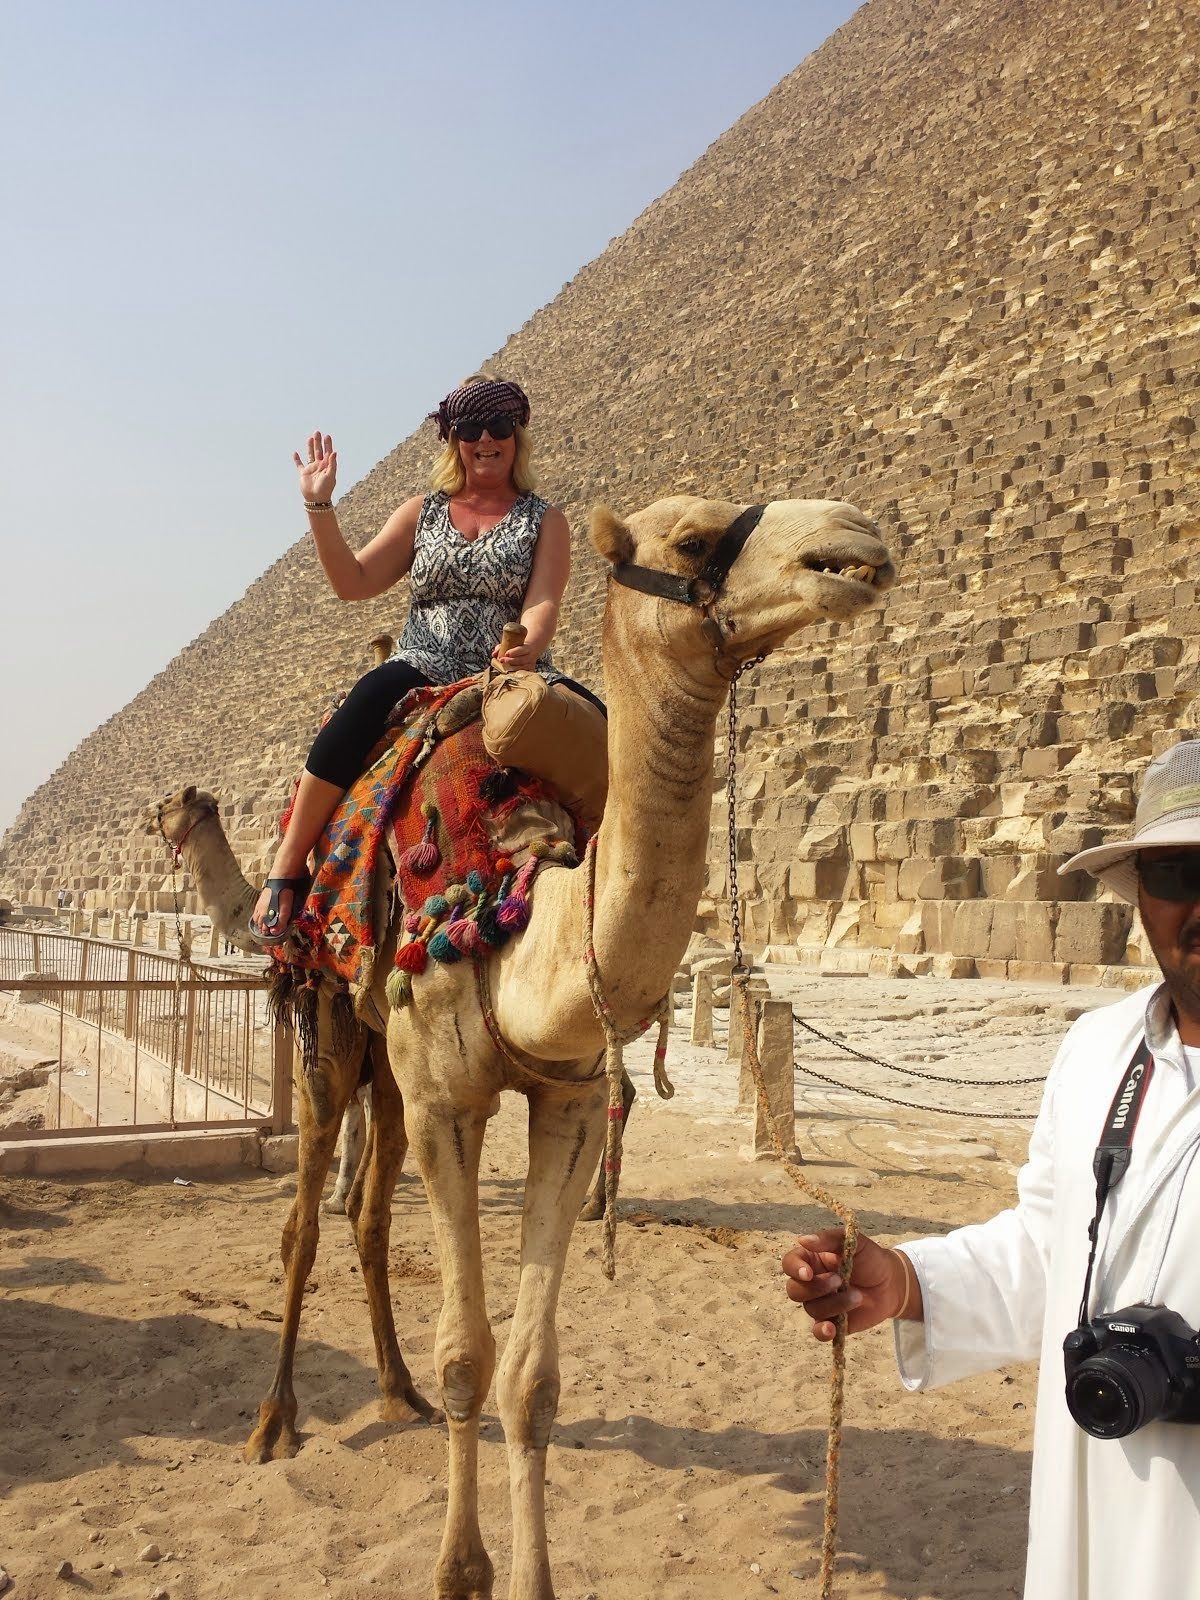 Egypt sept.-14!